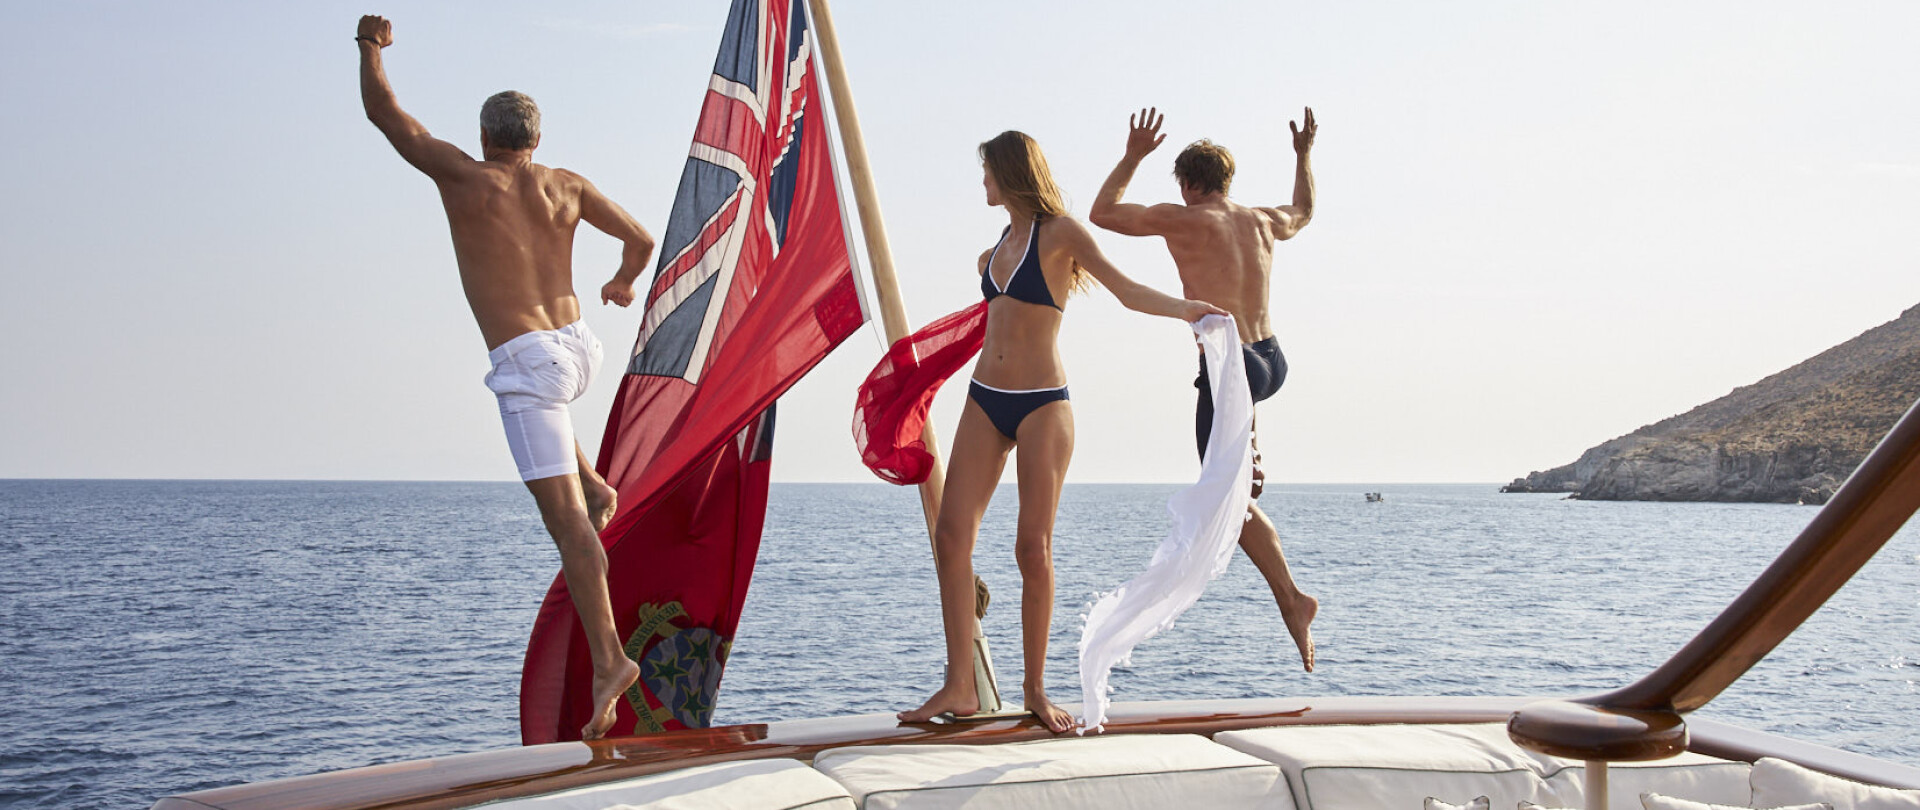 Looking to charter this summer? Book now to avoid disappointment photo 1